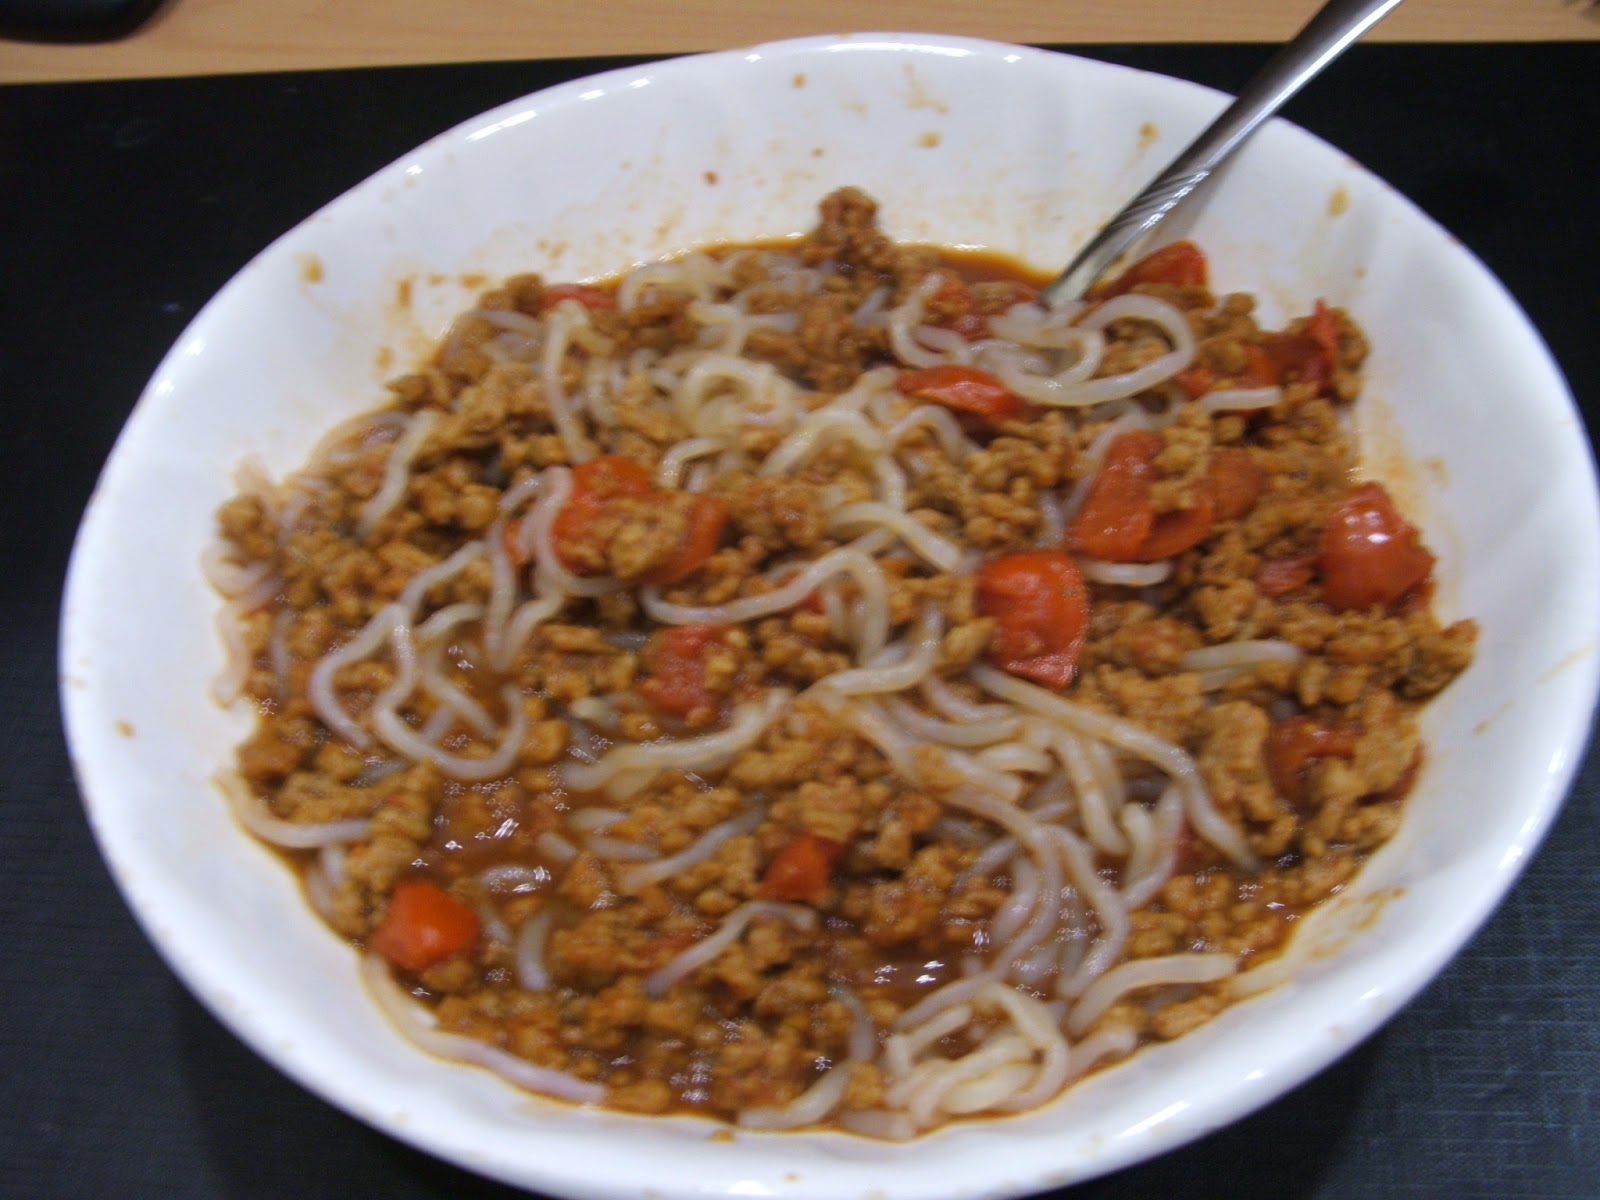 All Things Fabulous: Slim Pasta Spaghetti and Fettuccine VS Zero Noodles + Review